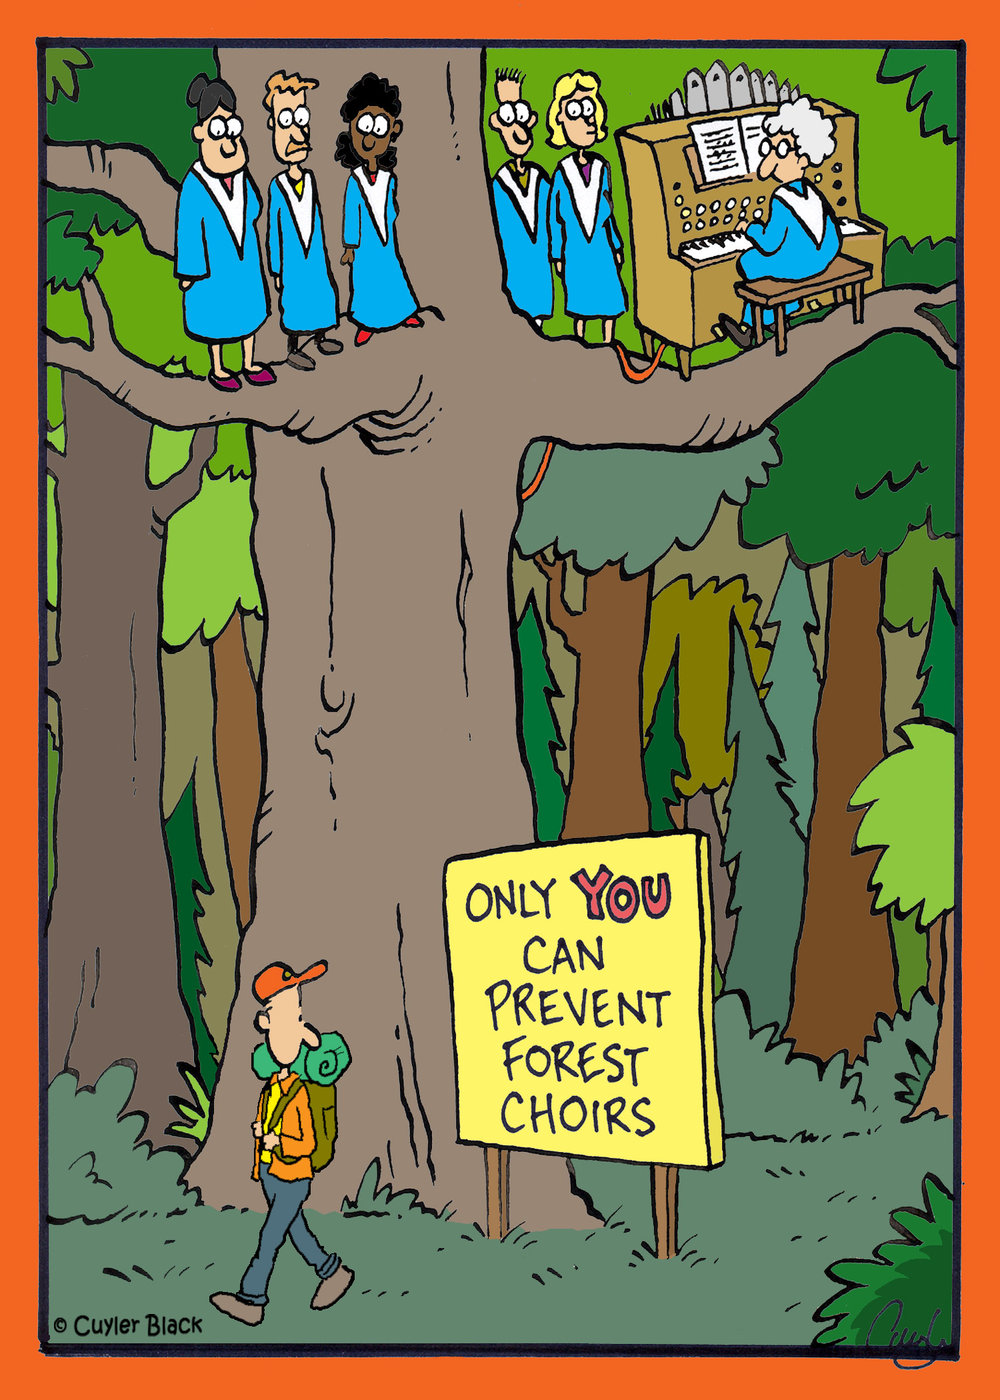 forest choirs.jpg